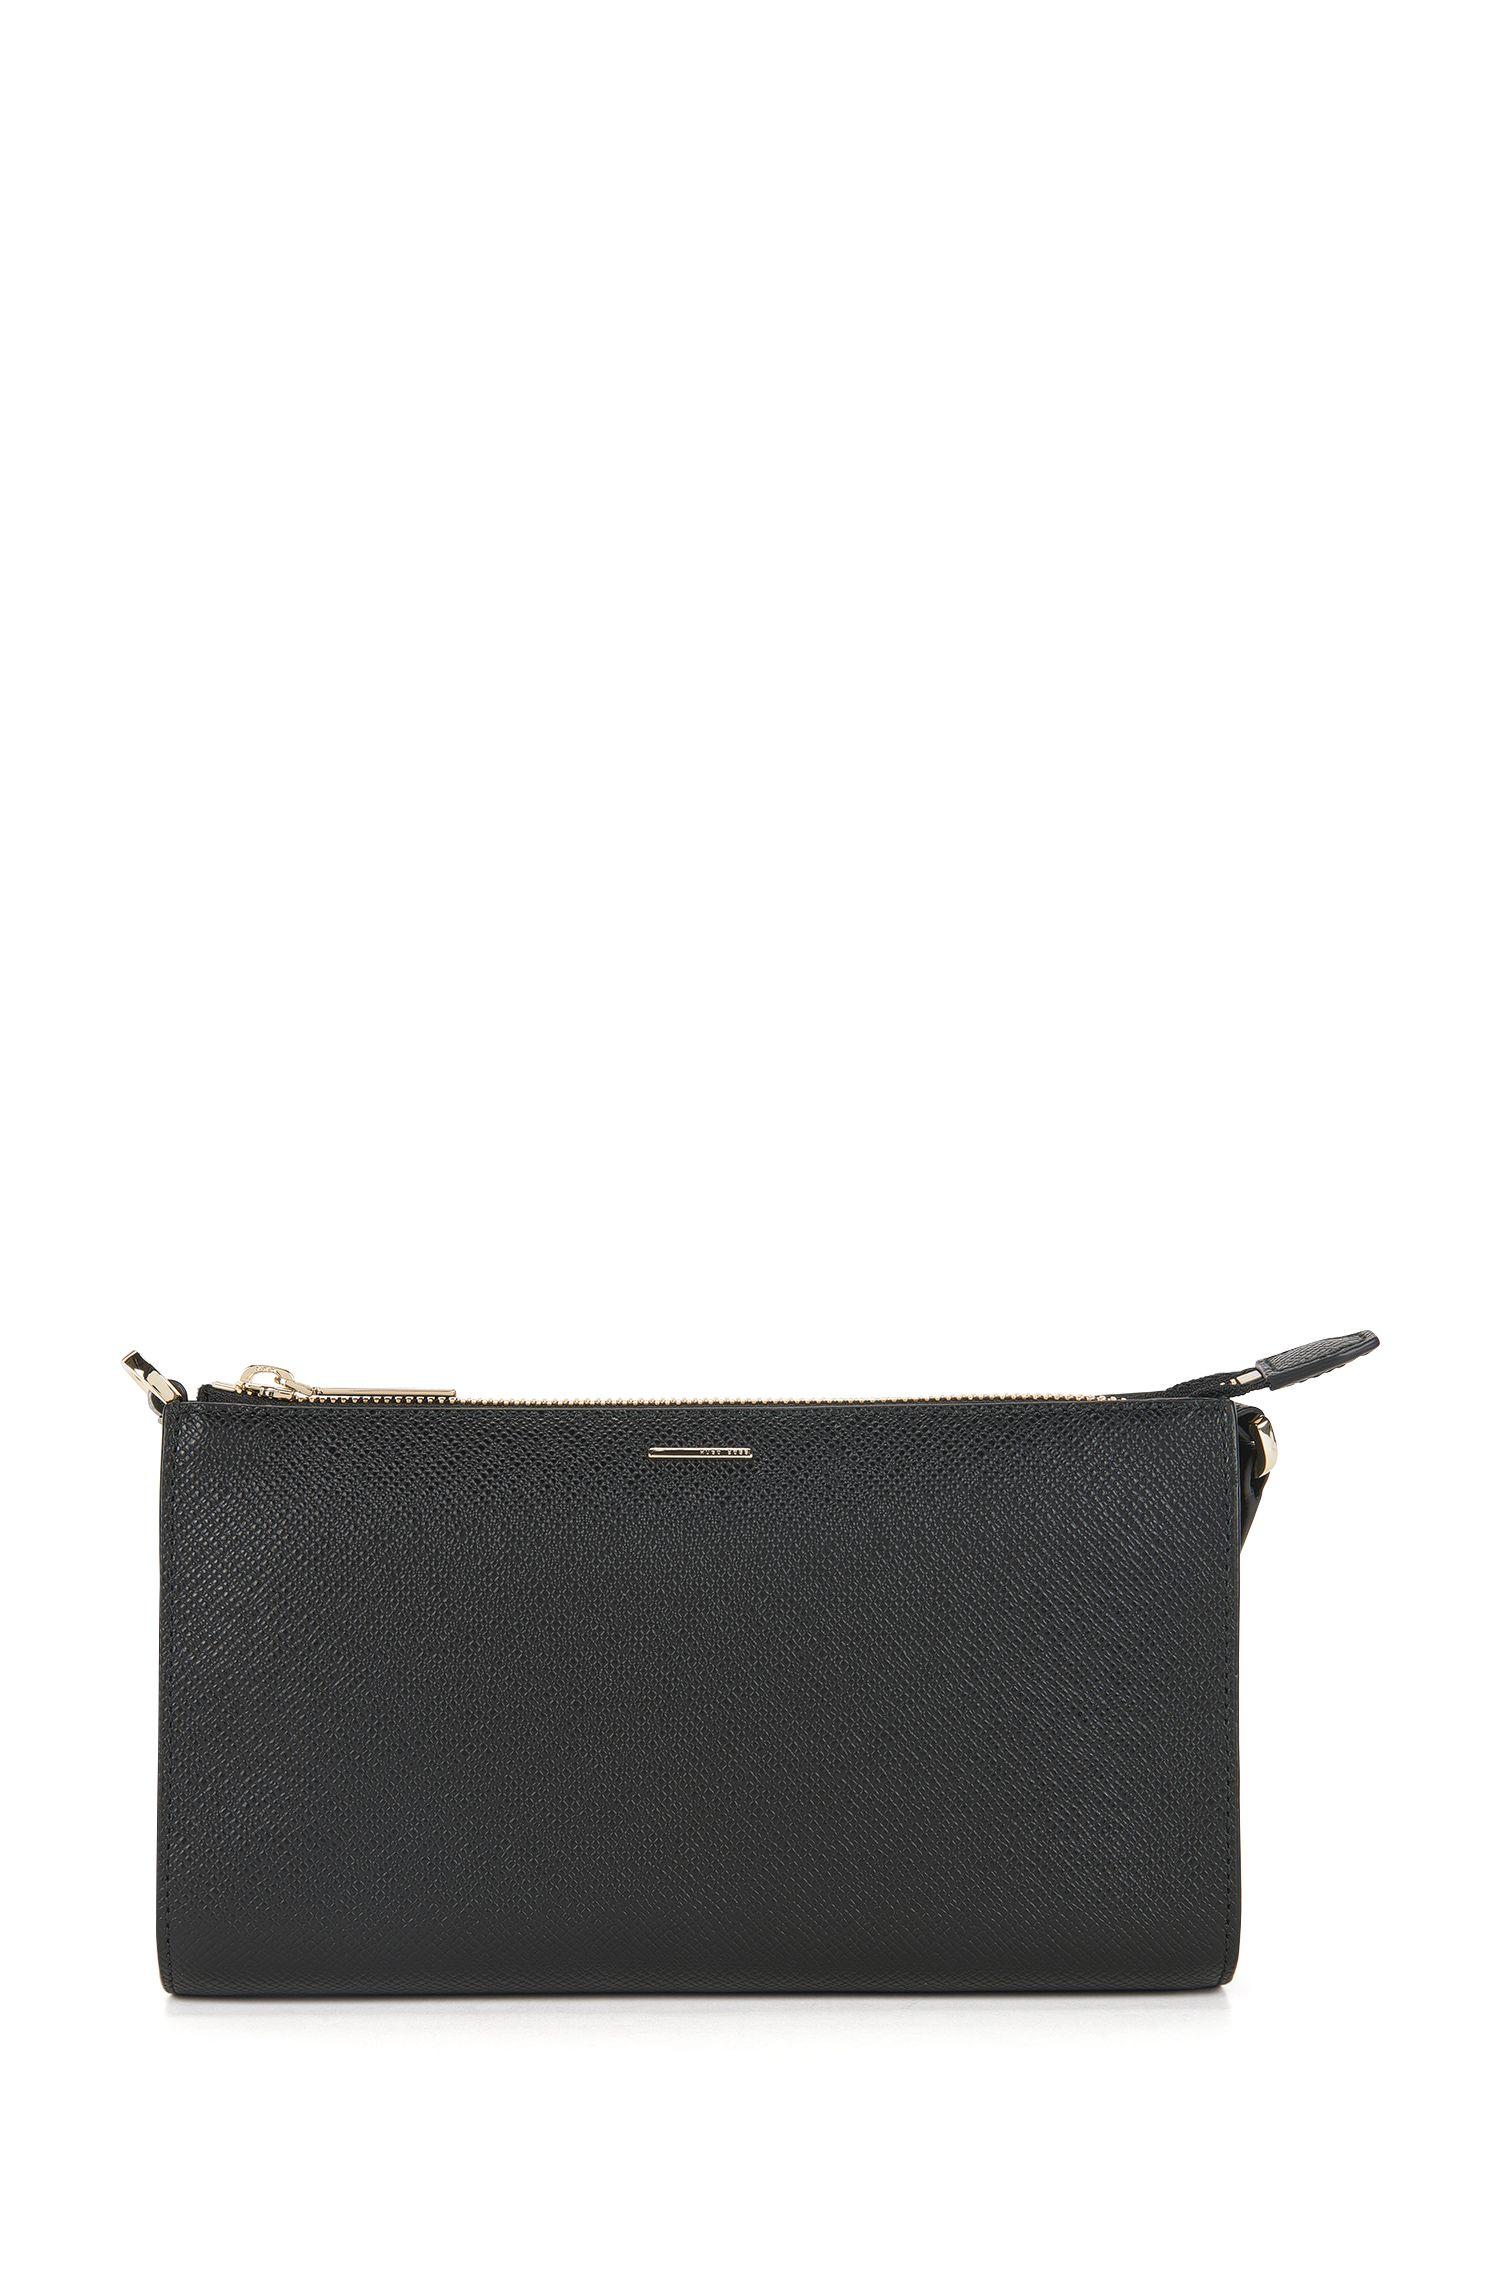 Cabas BOSS Luxury Staple en cuir